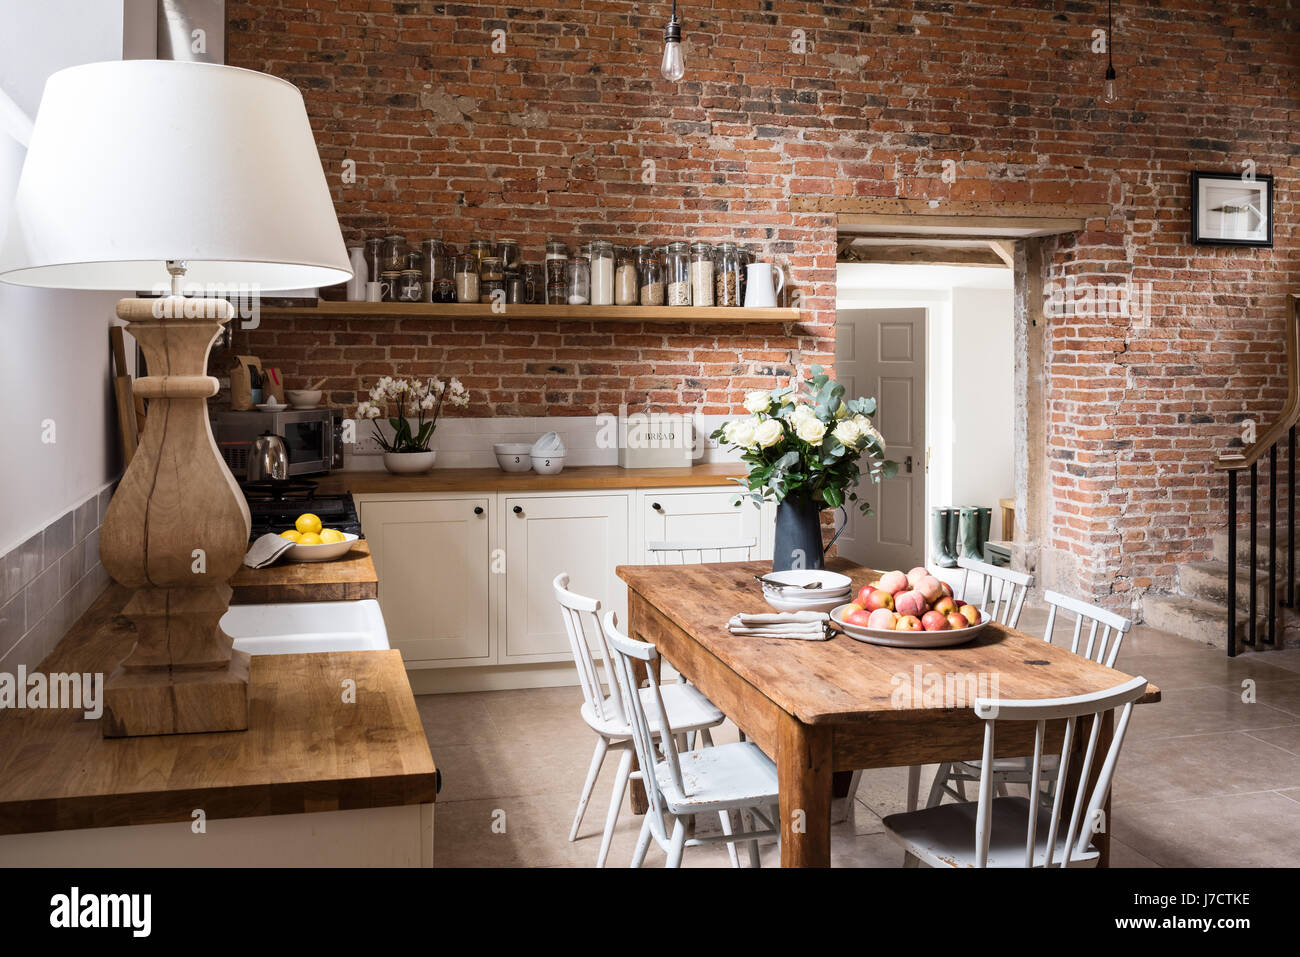 Exposed Brick Interior Stockfotos & Exposed Brick Interior Bilder ...